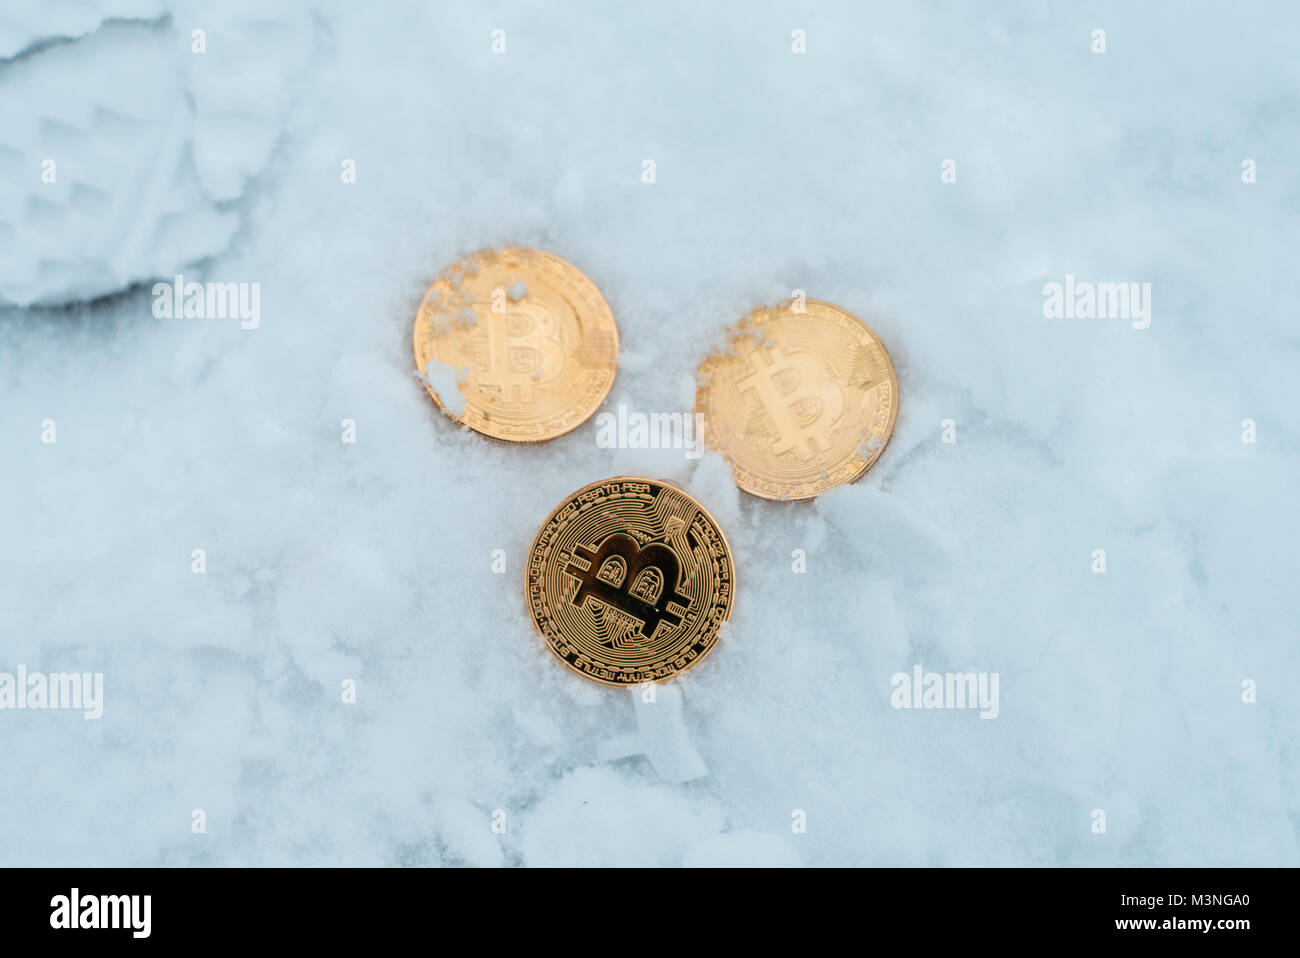 Metal gold coins bitcoin, crypto currency in winter on snow lie in snowdrift. Loss of money. - Stock Image